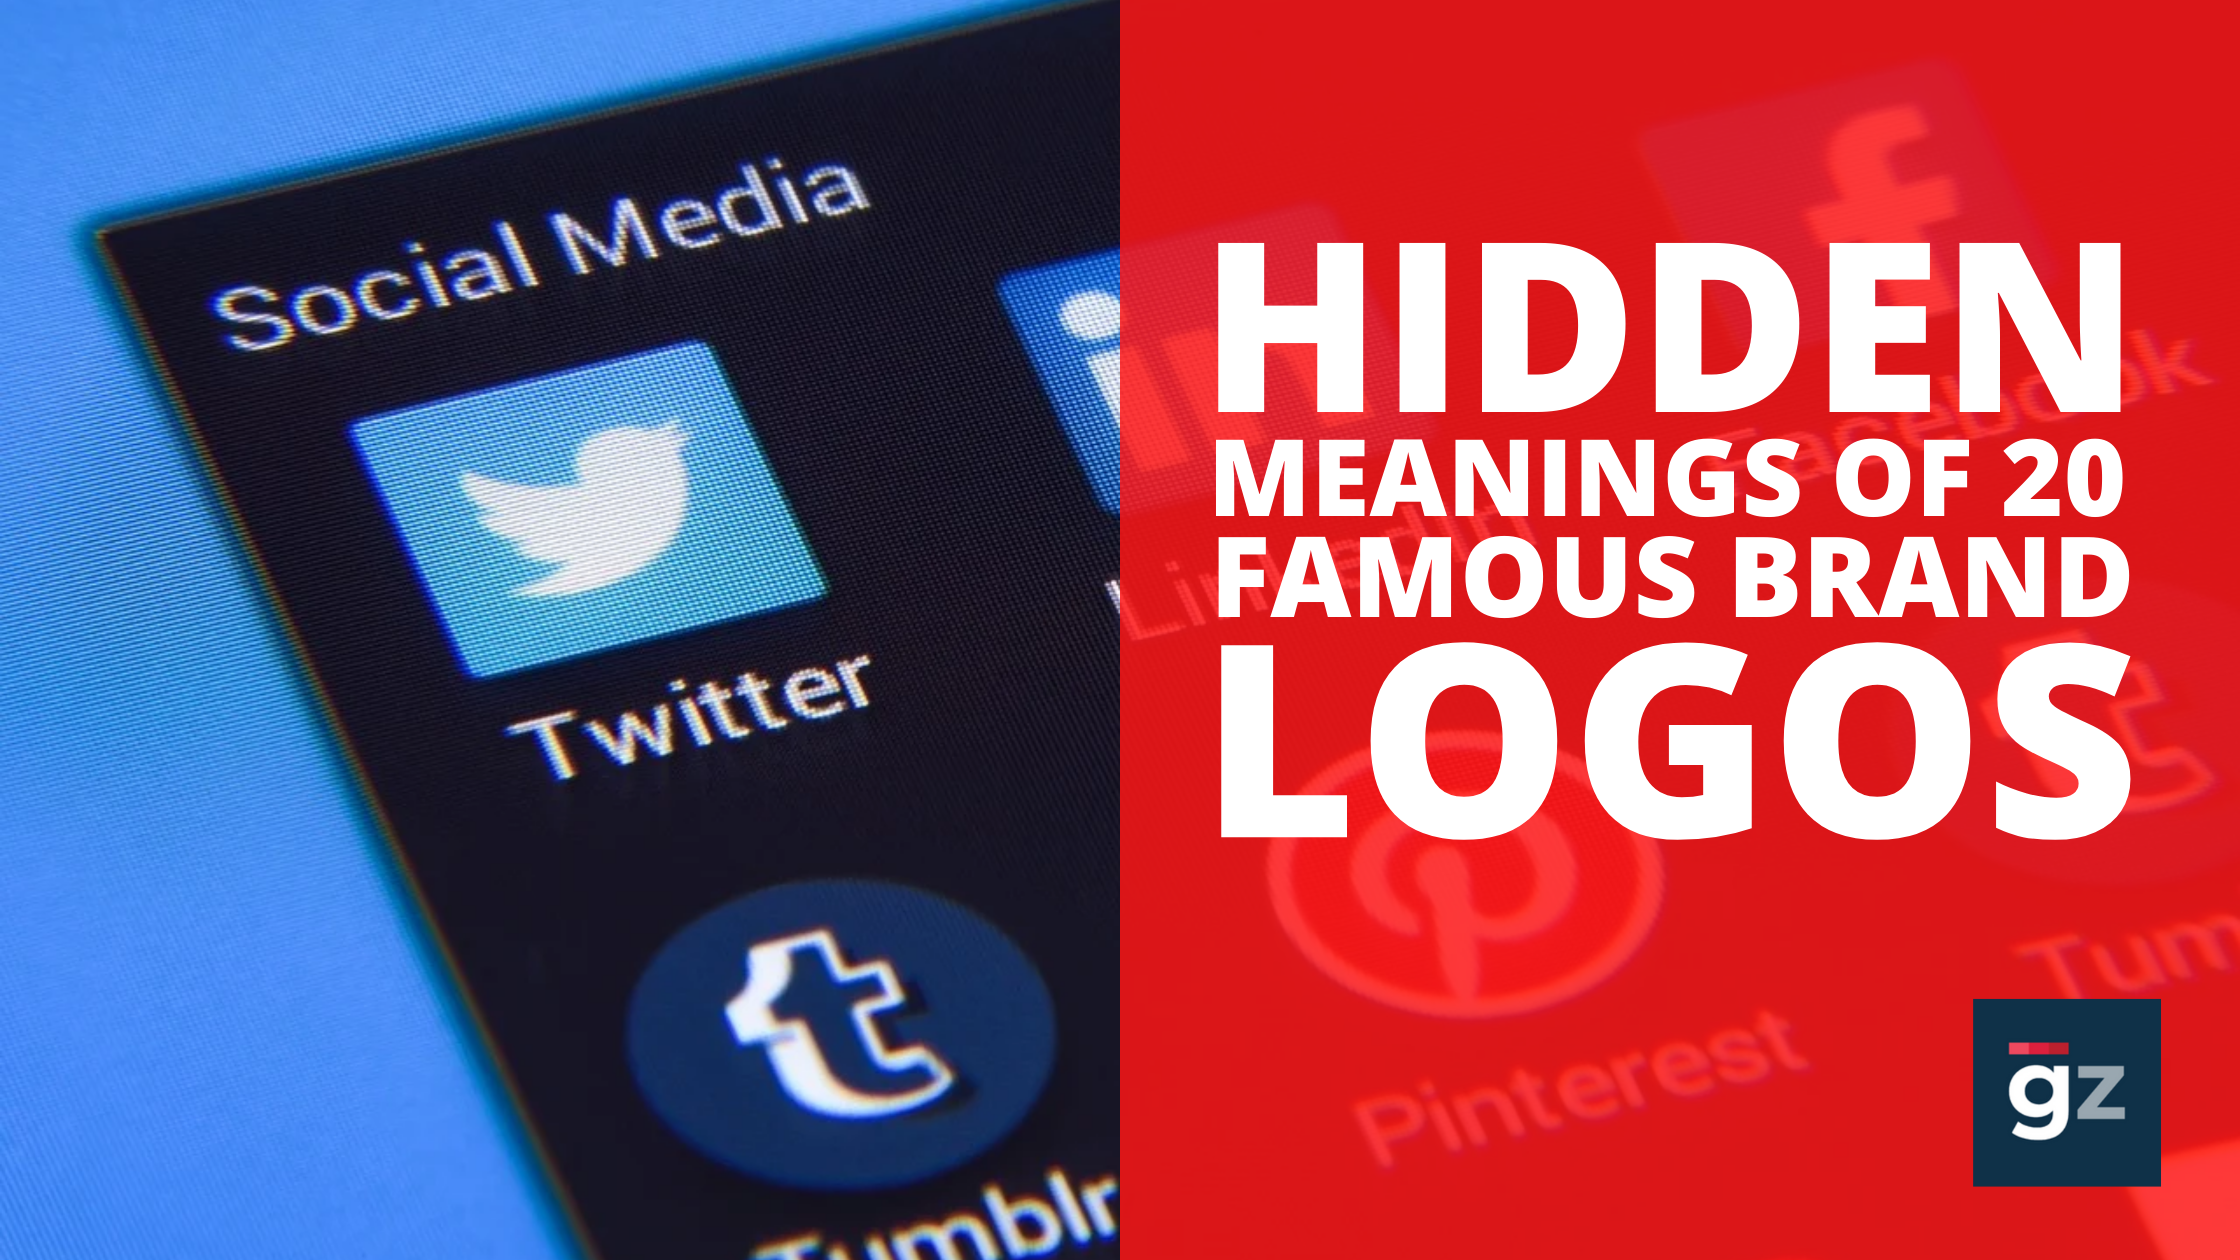 Hidden Meanings Of 20 Famous Brand Logos